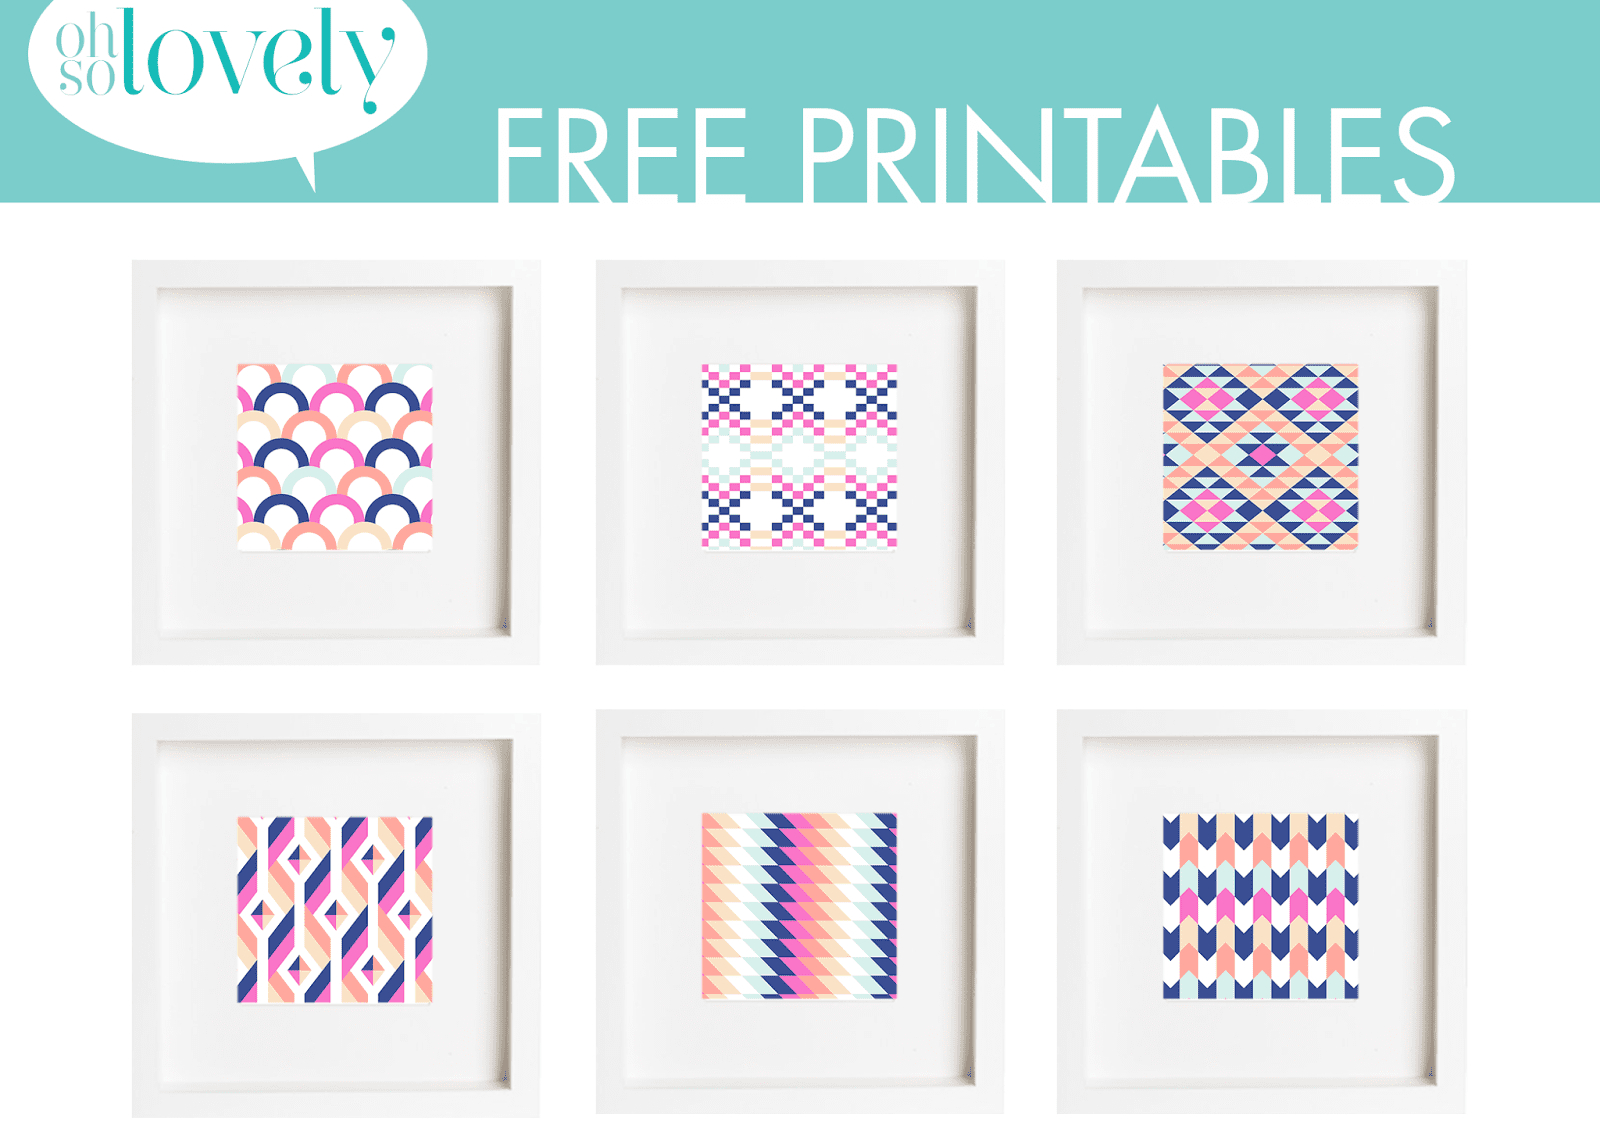 11 Places To Find Free, Printable Wall Art Online - Free Printable Wall Posters